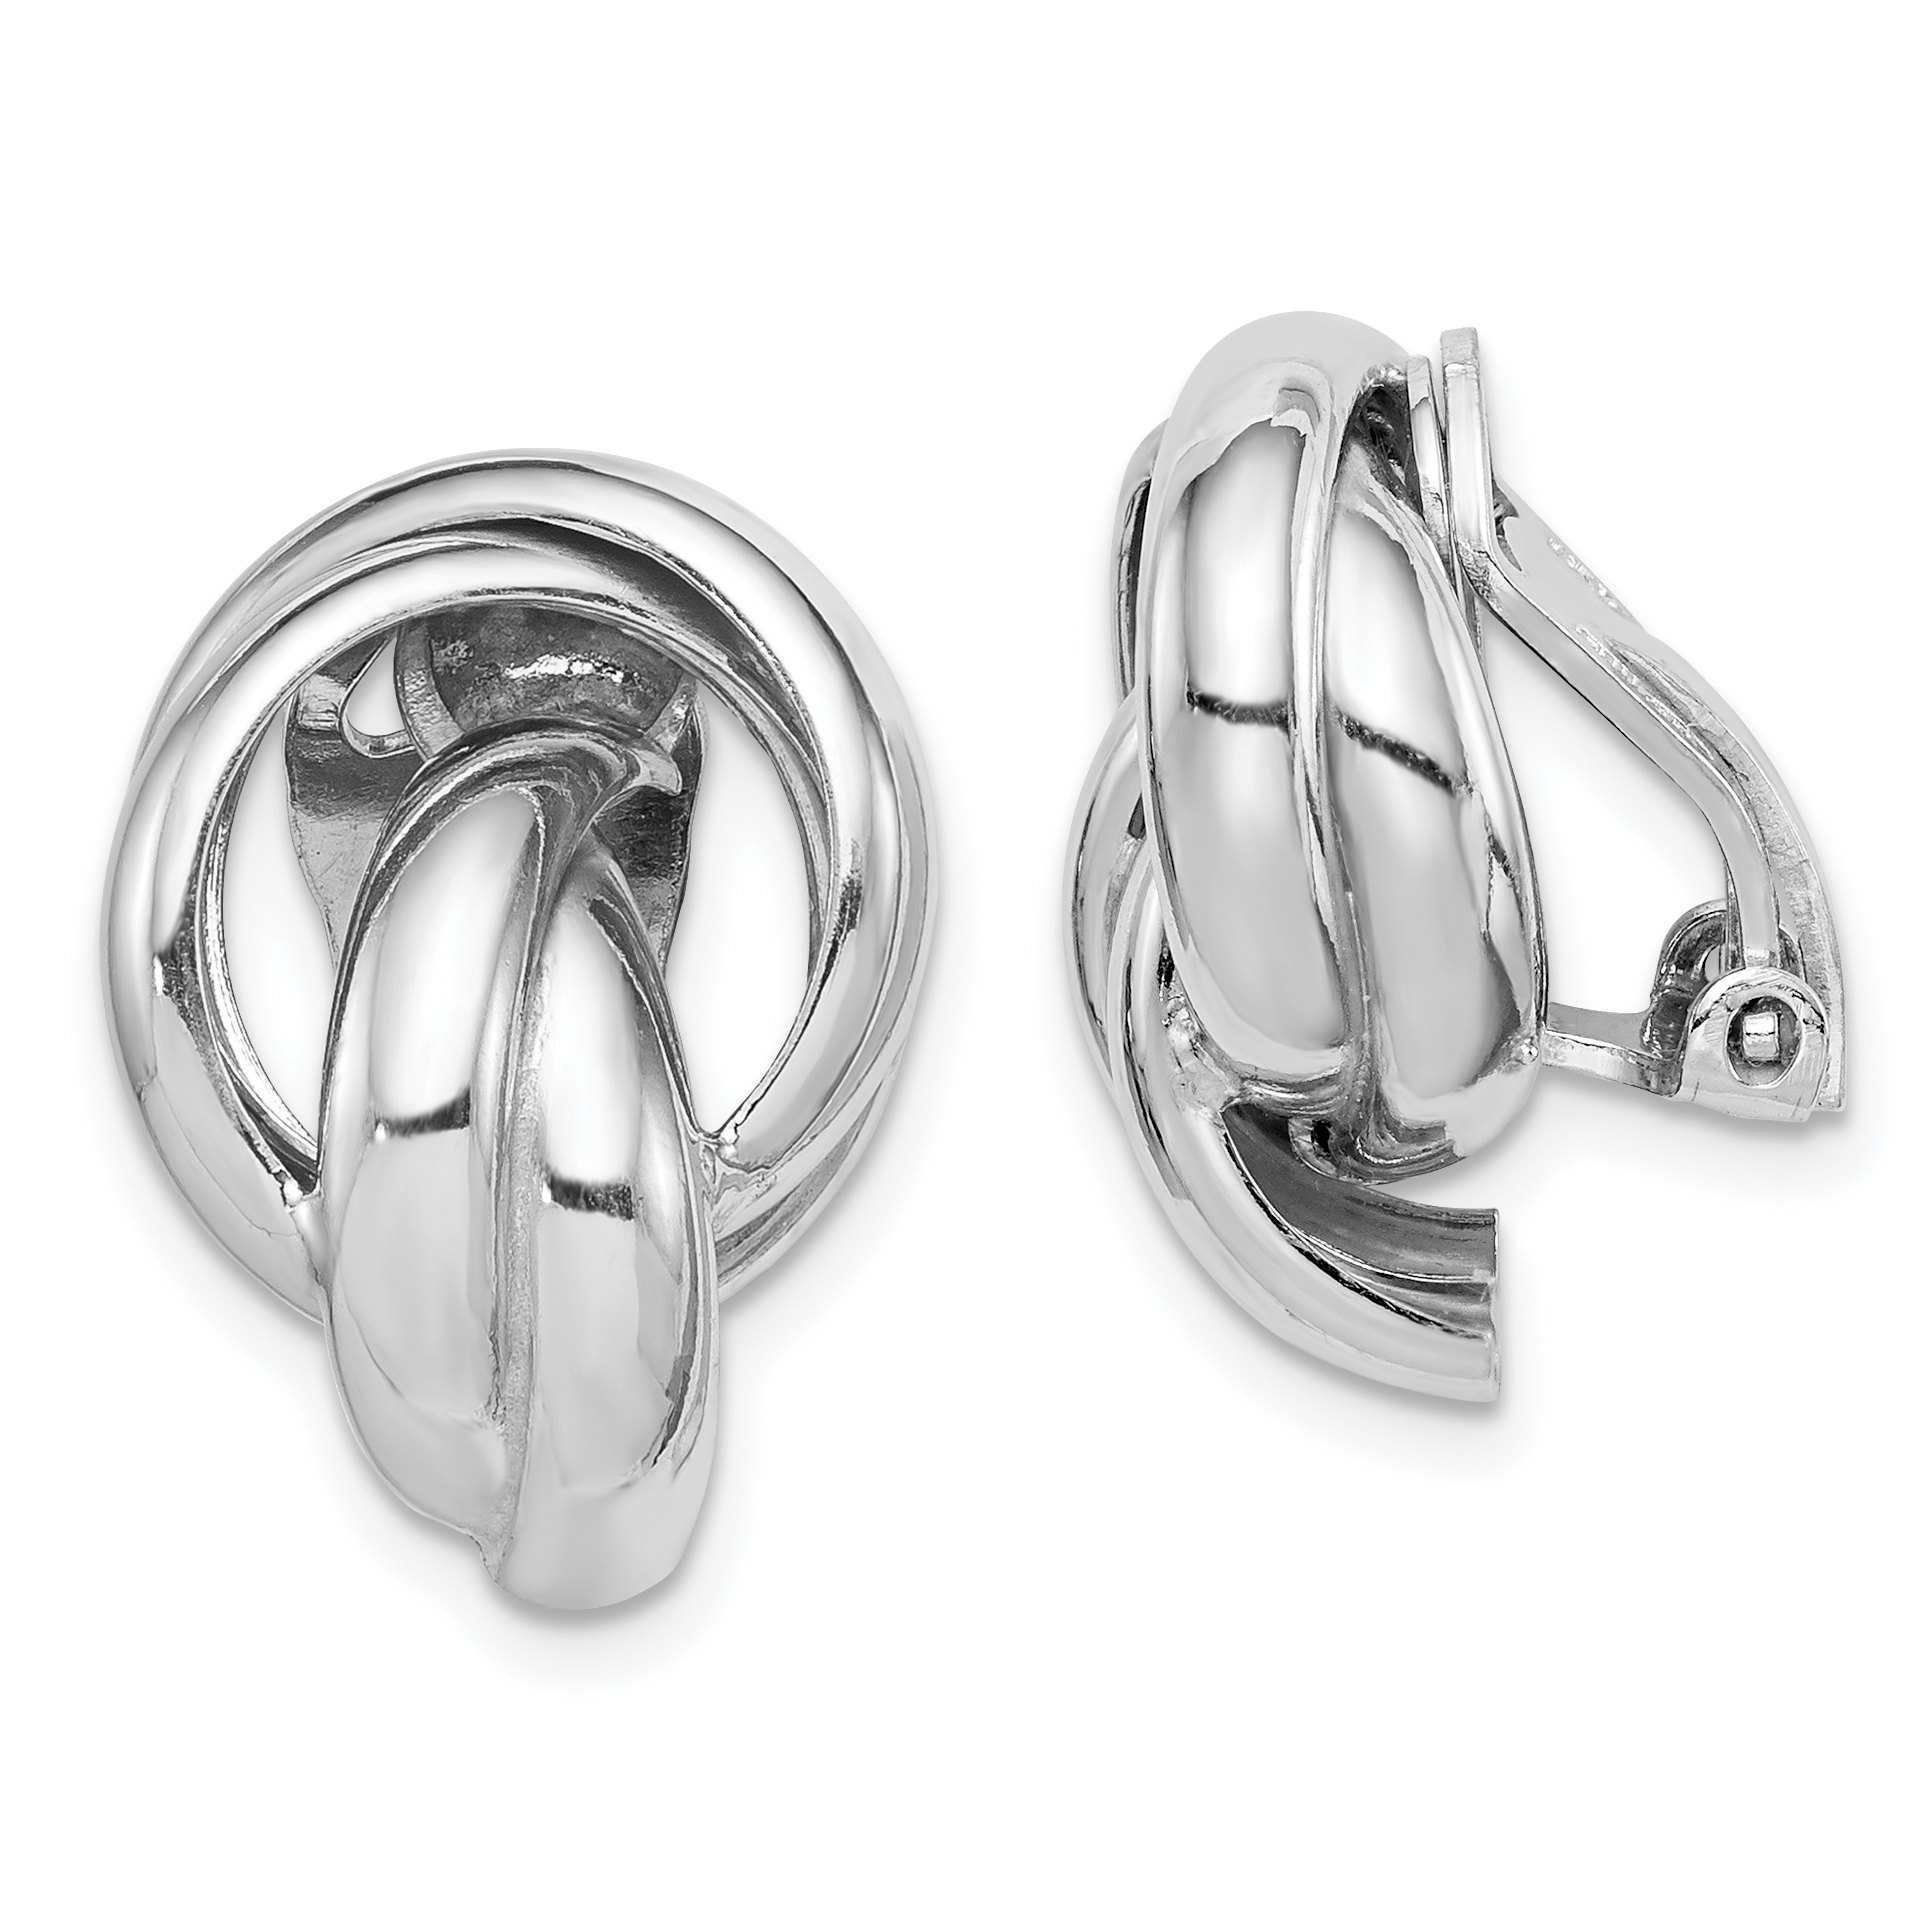 Sterling Silver Rhodium Plated Knot Design Clip Back Non Pierced Earrings Weight 4 64 Grams Length 19mm Width 13mm